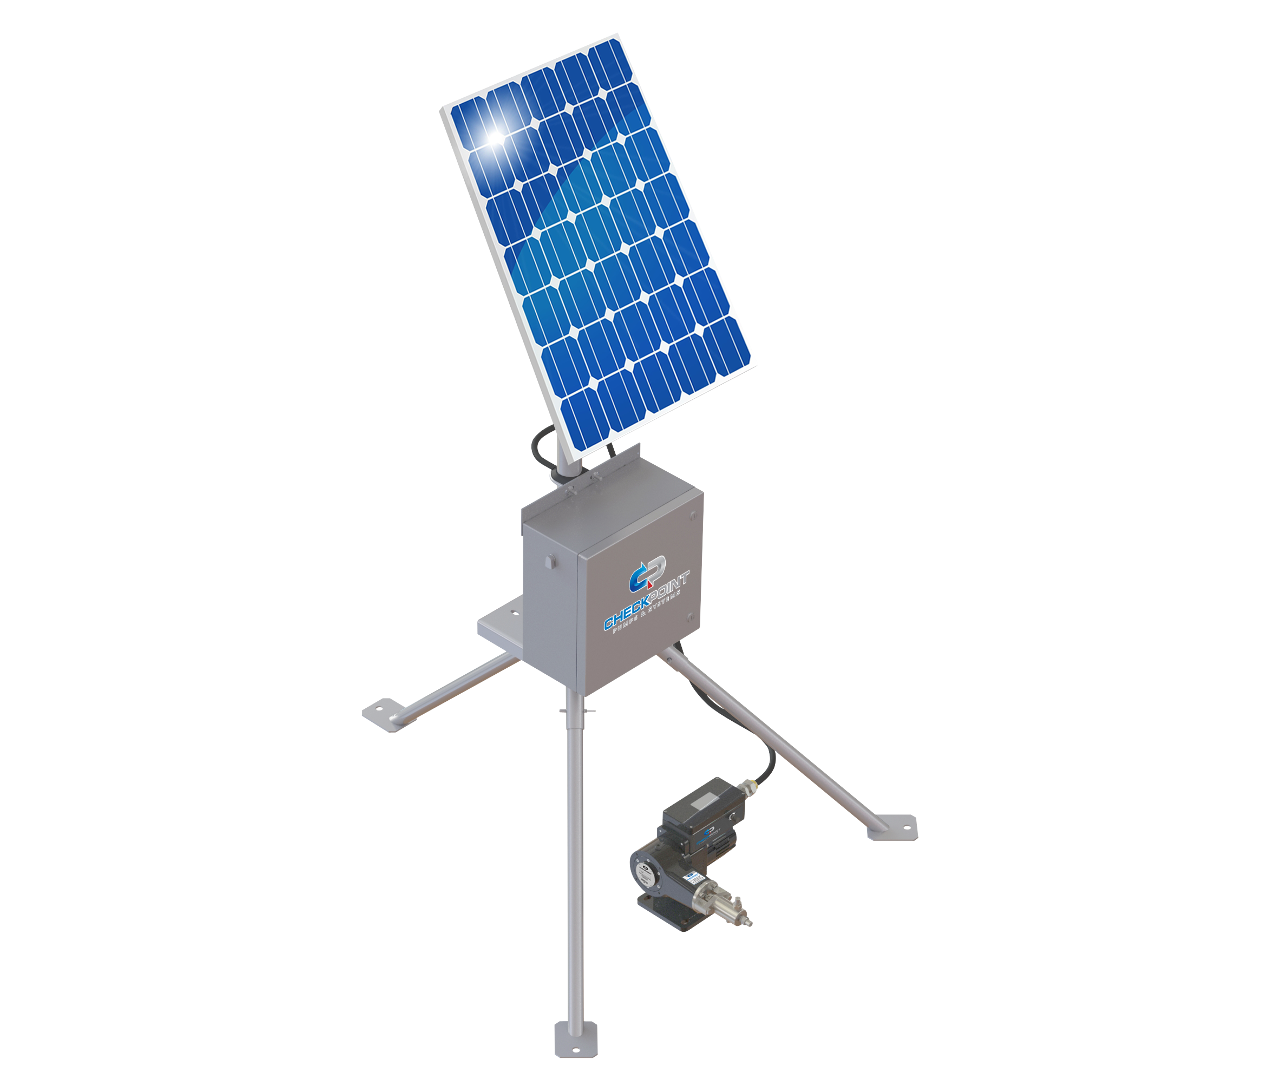 1280x1090 Series Fxs Solar Injection System Checkpoint Pumps Systems